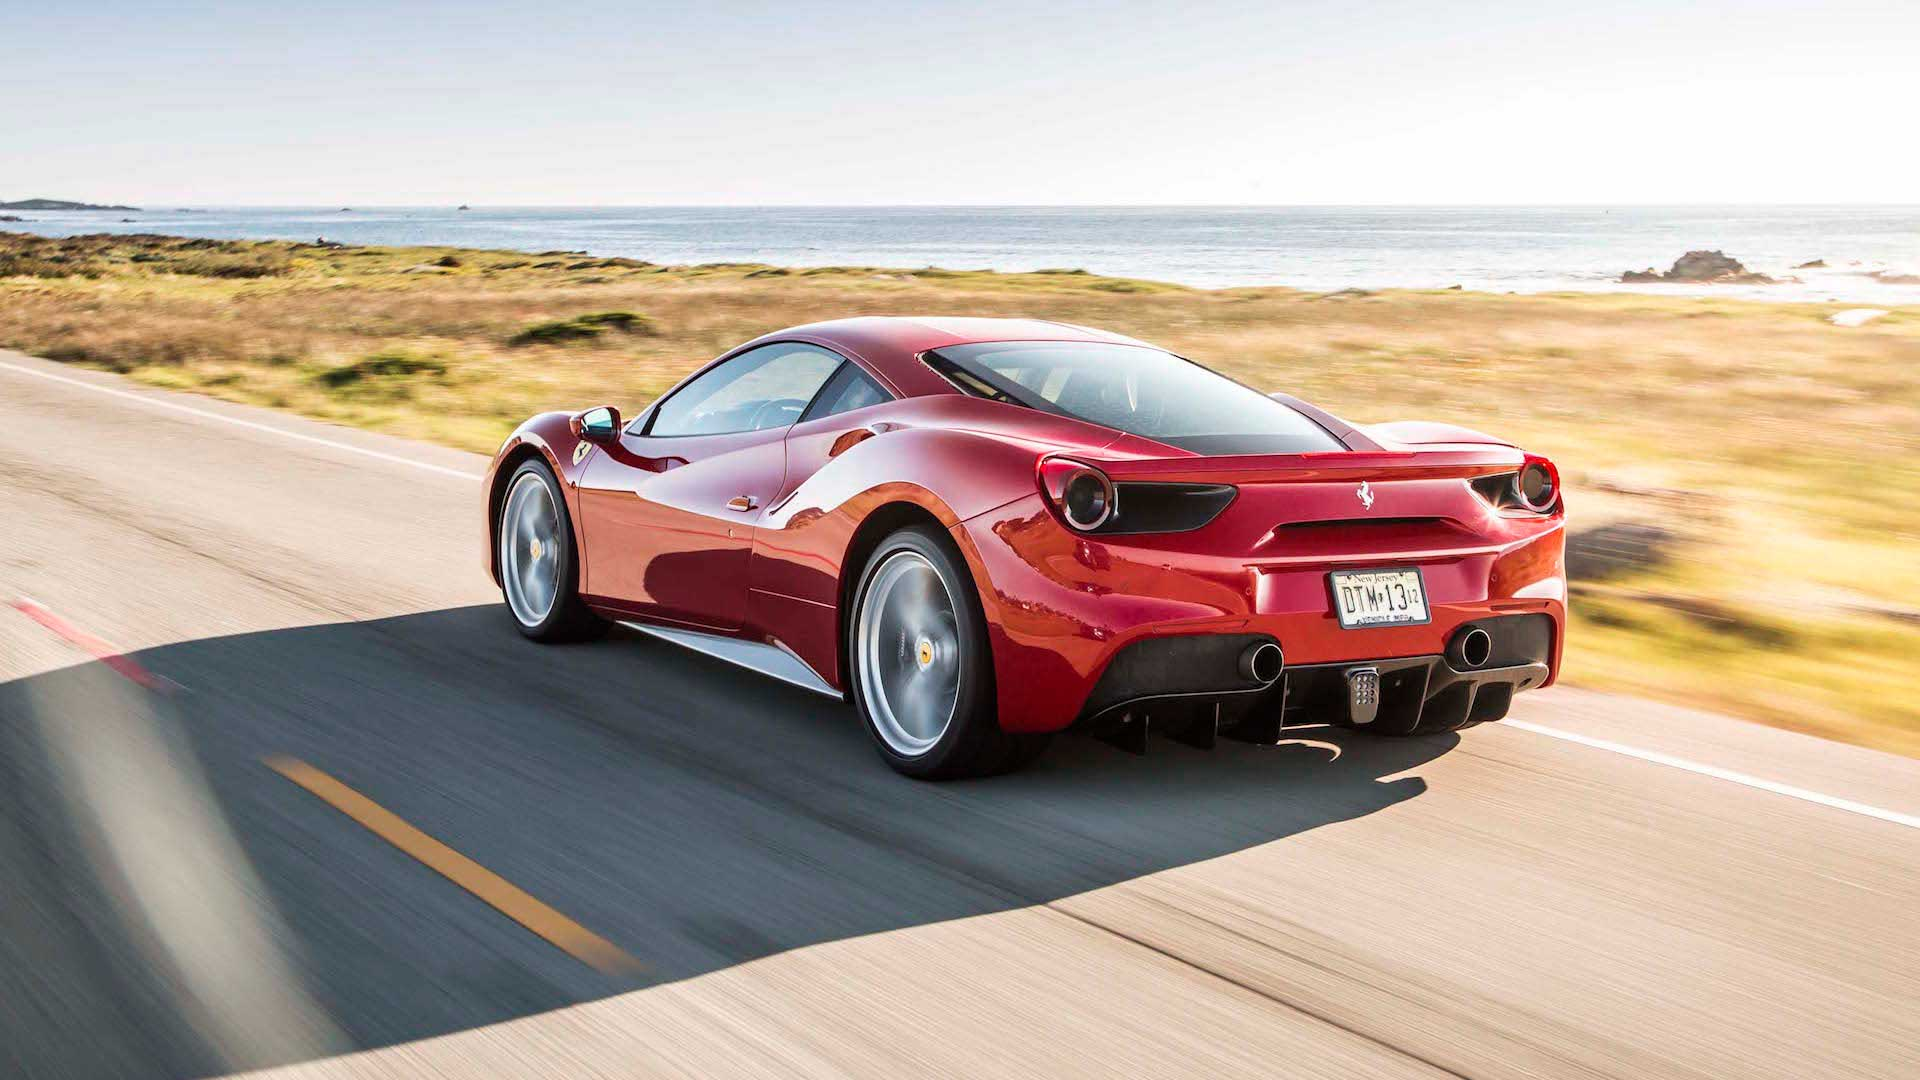 Ferrari 488 Spider Wallpapers Posted By John Peltier